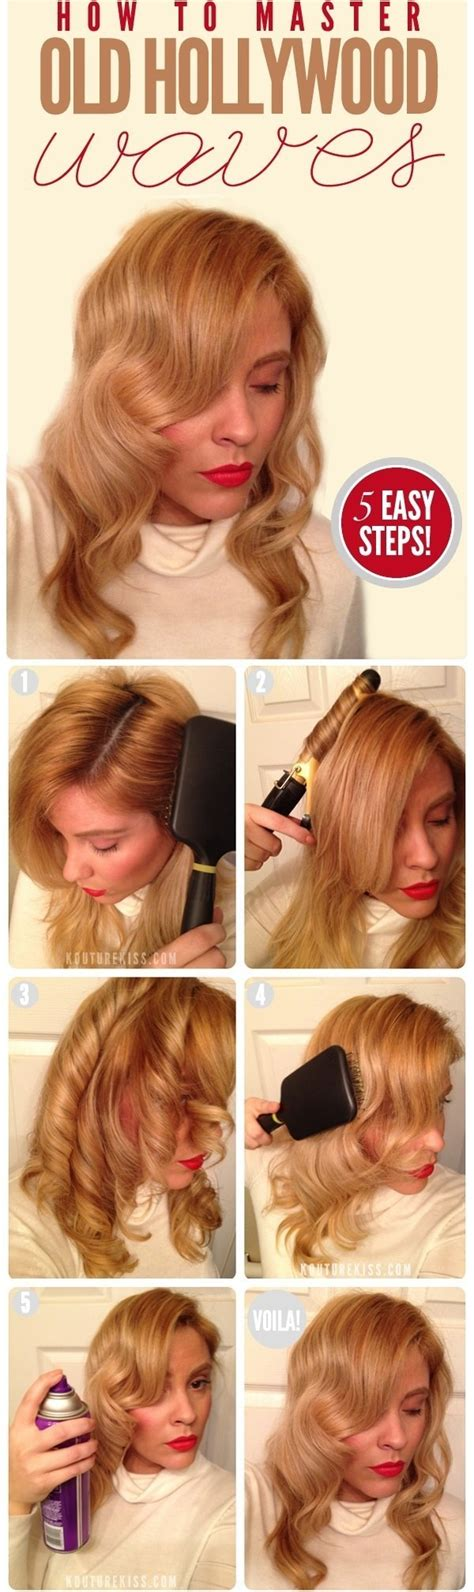 retro hair short diy 30 diy vintage hairstyle tutorials for short medium long